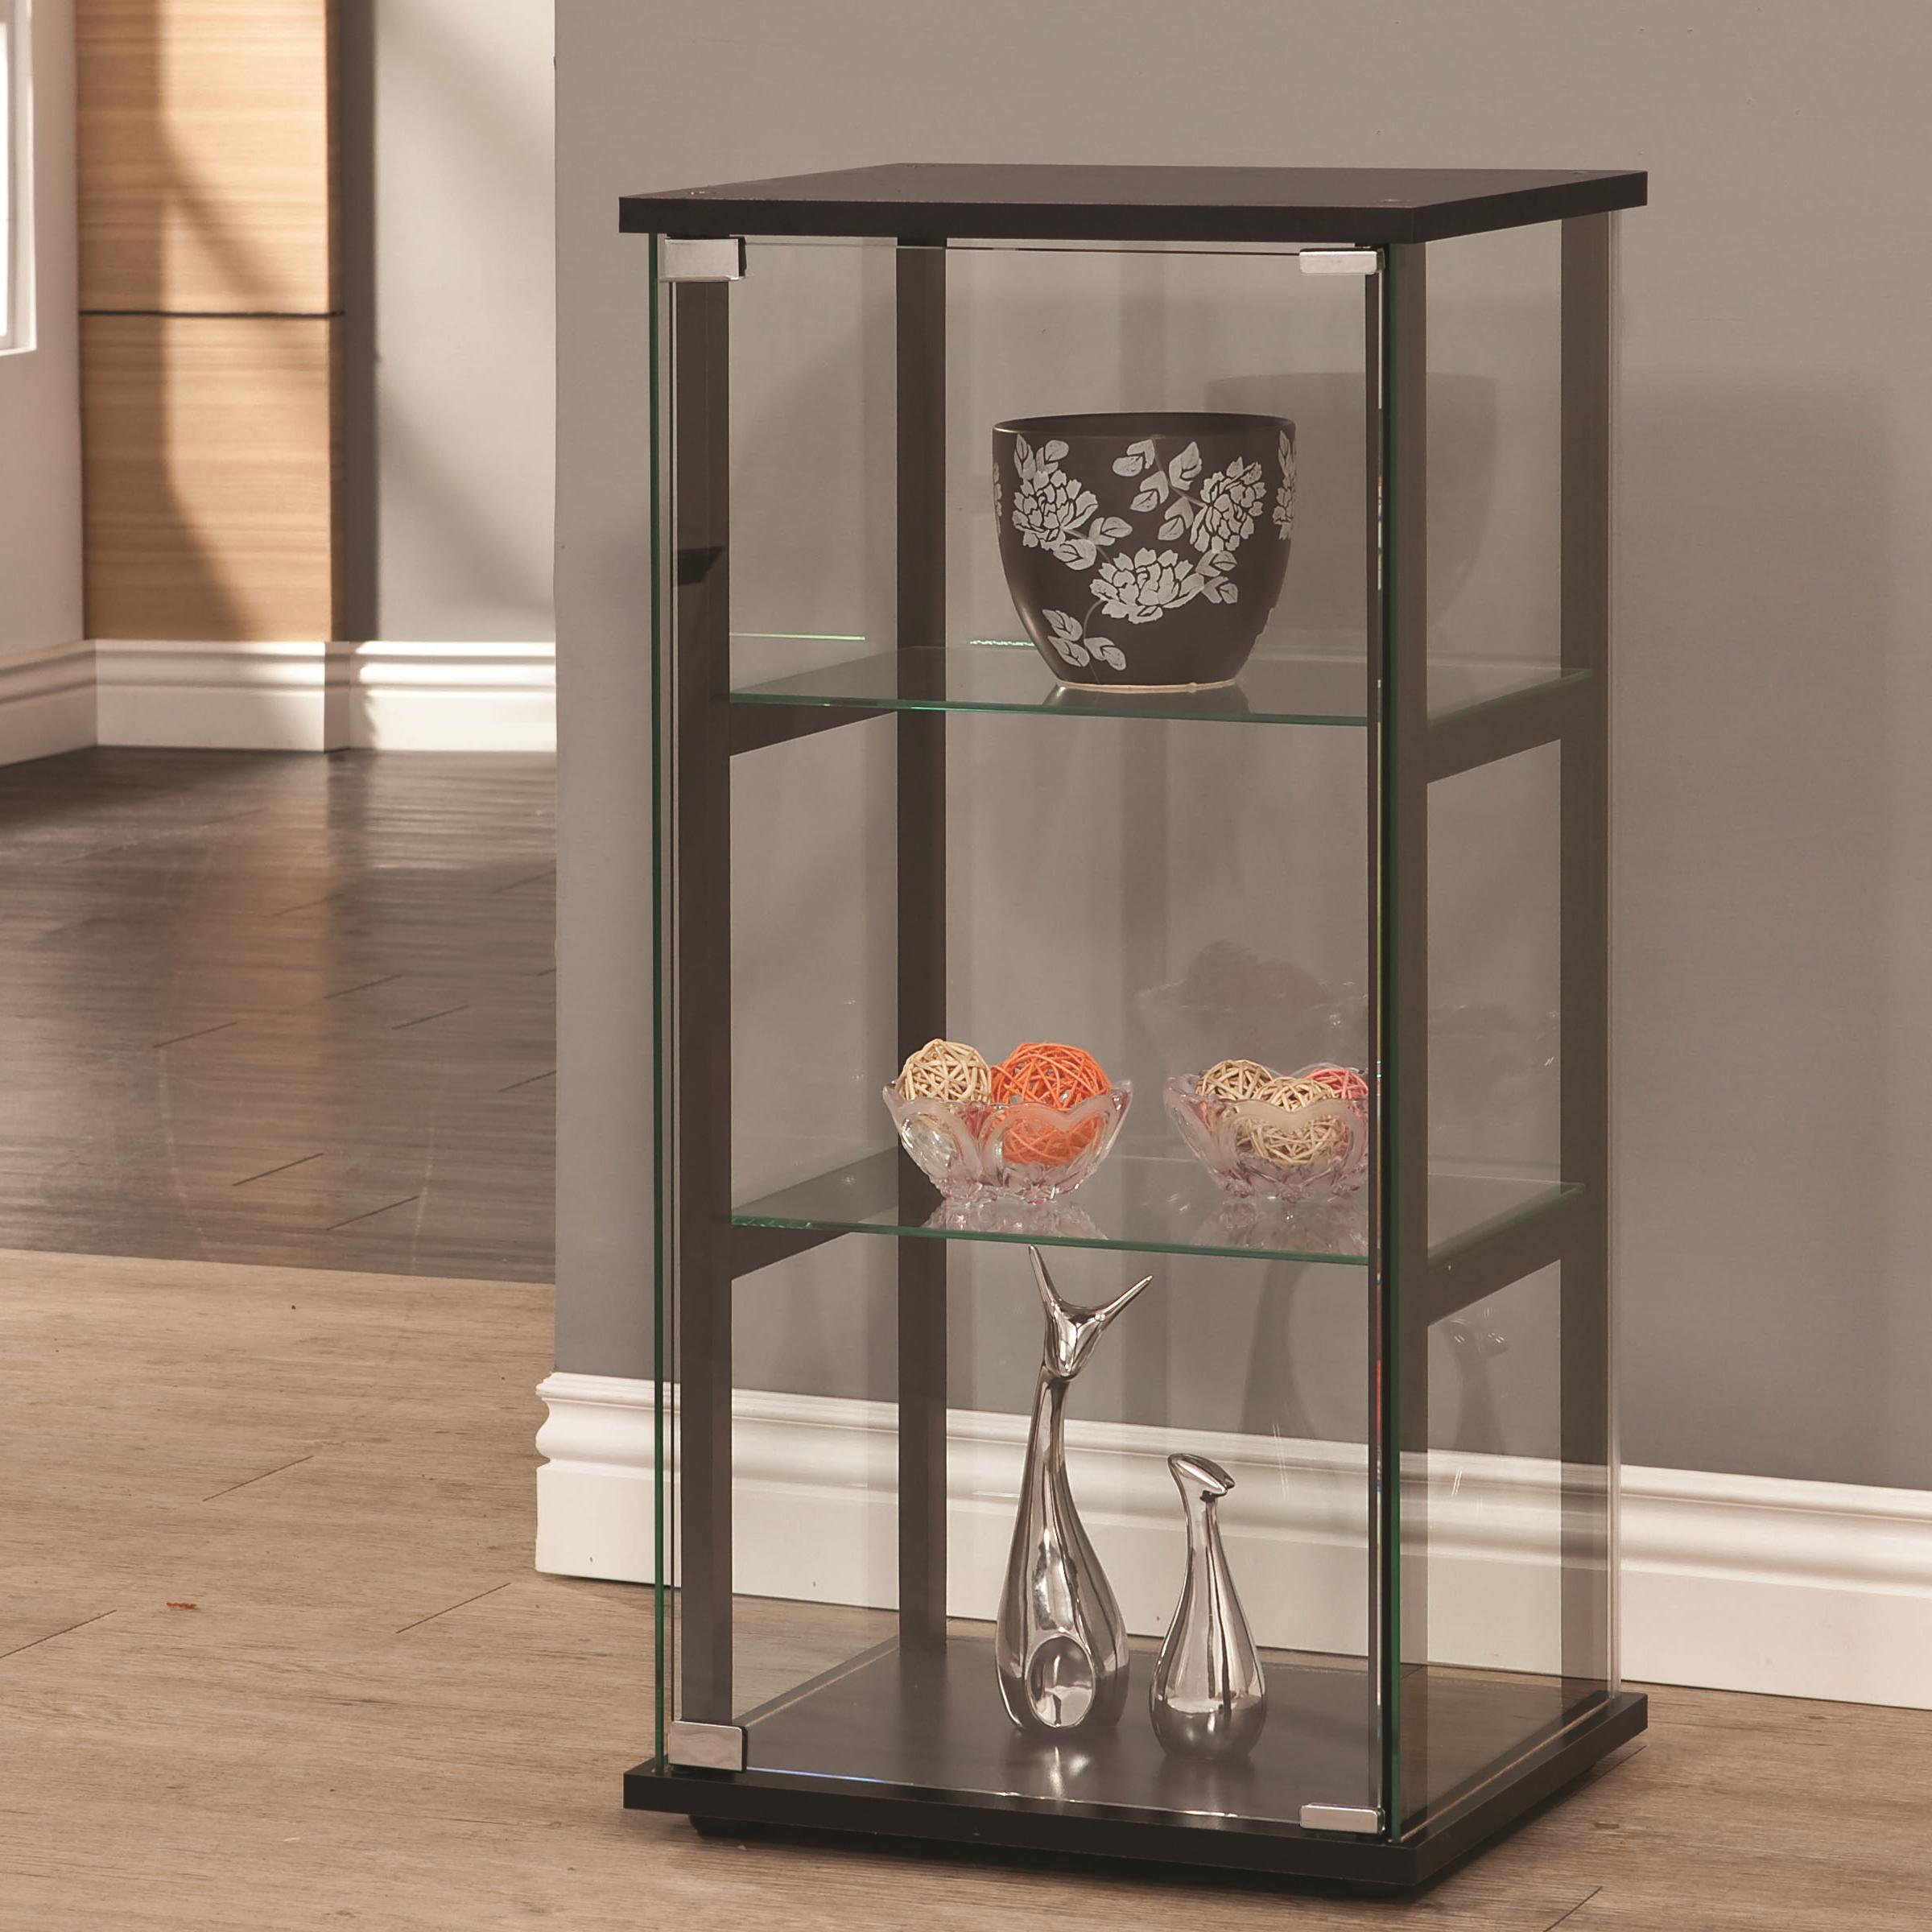 Incroyable 3 Shelf Contemporary Glass Curio Cabinet